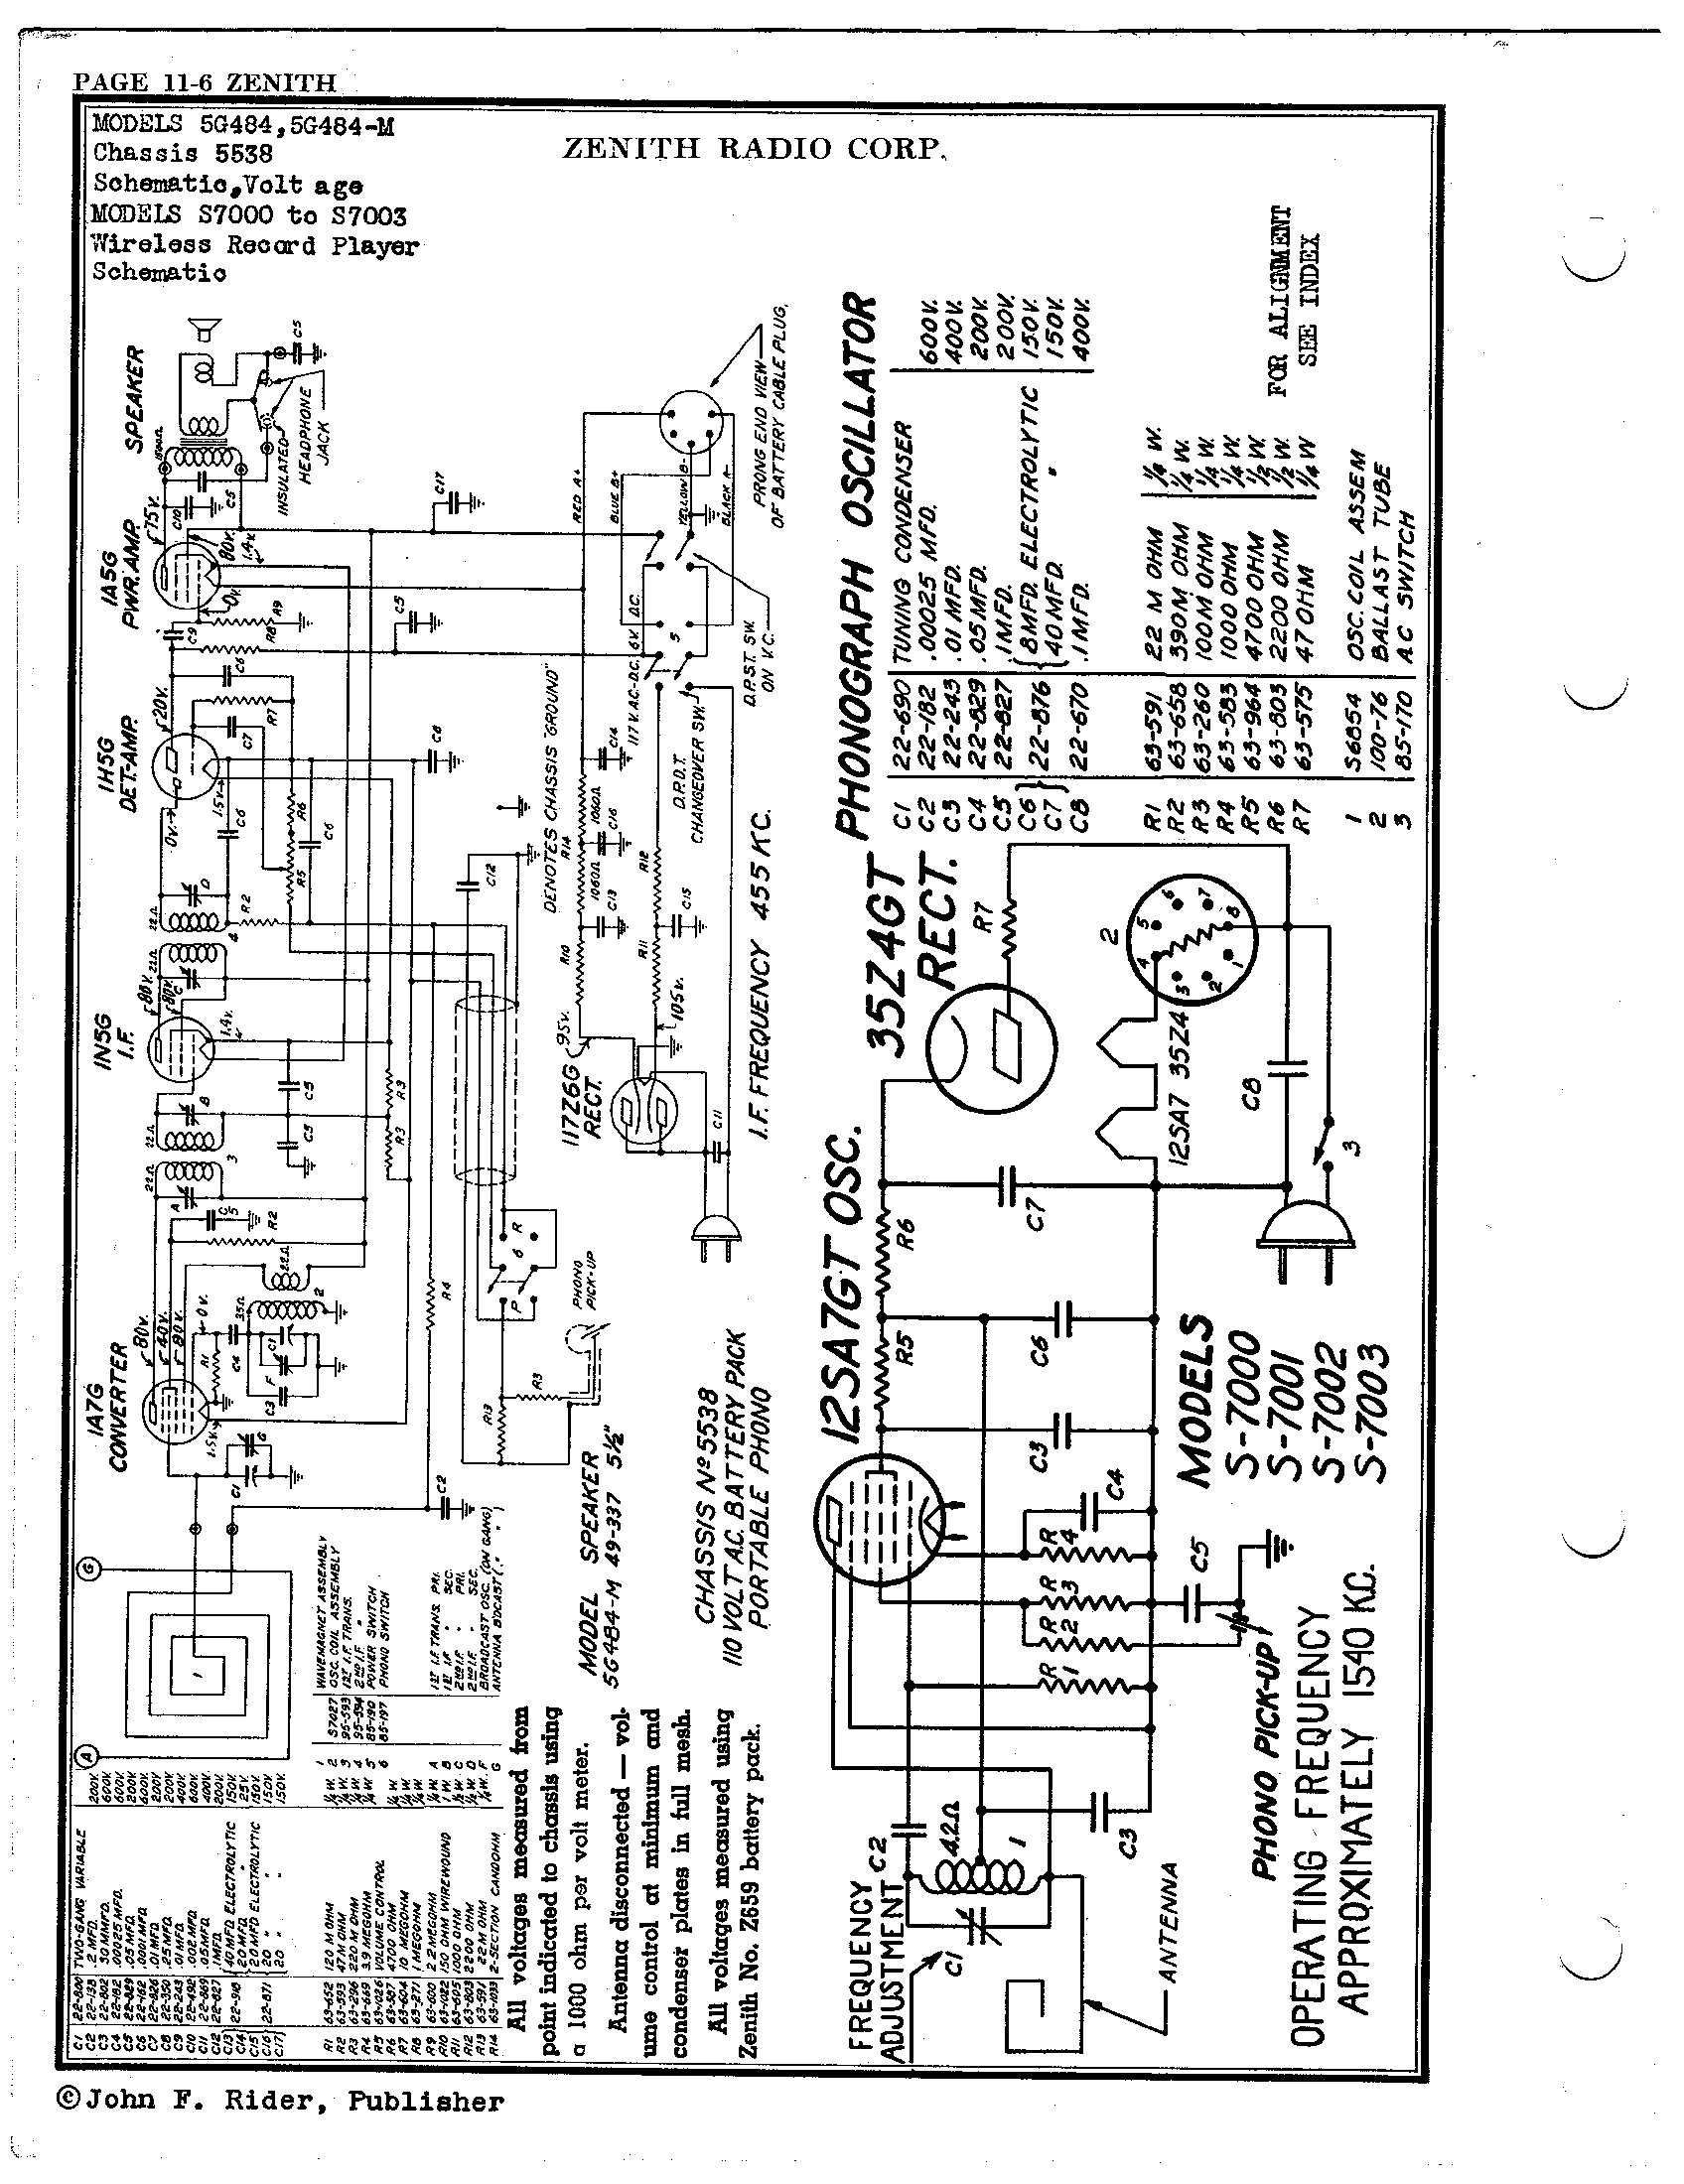 Zenith Radio Corp S7000 Antique Electronic Supply. Page 1 8496 Kb Rider Manual Volume 11. Wiring. Zenith Tube Radio Schematics N73 1 At Scoala.co